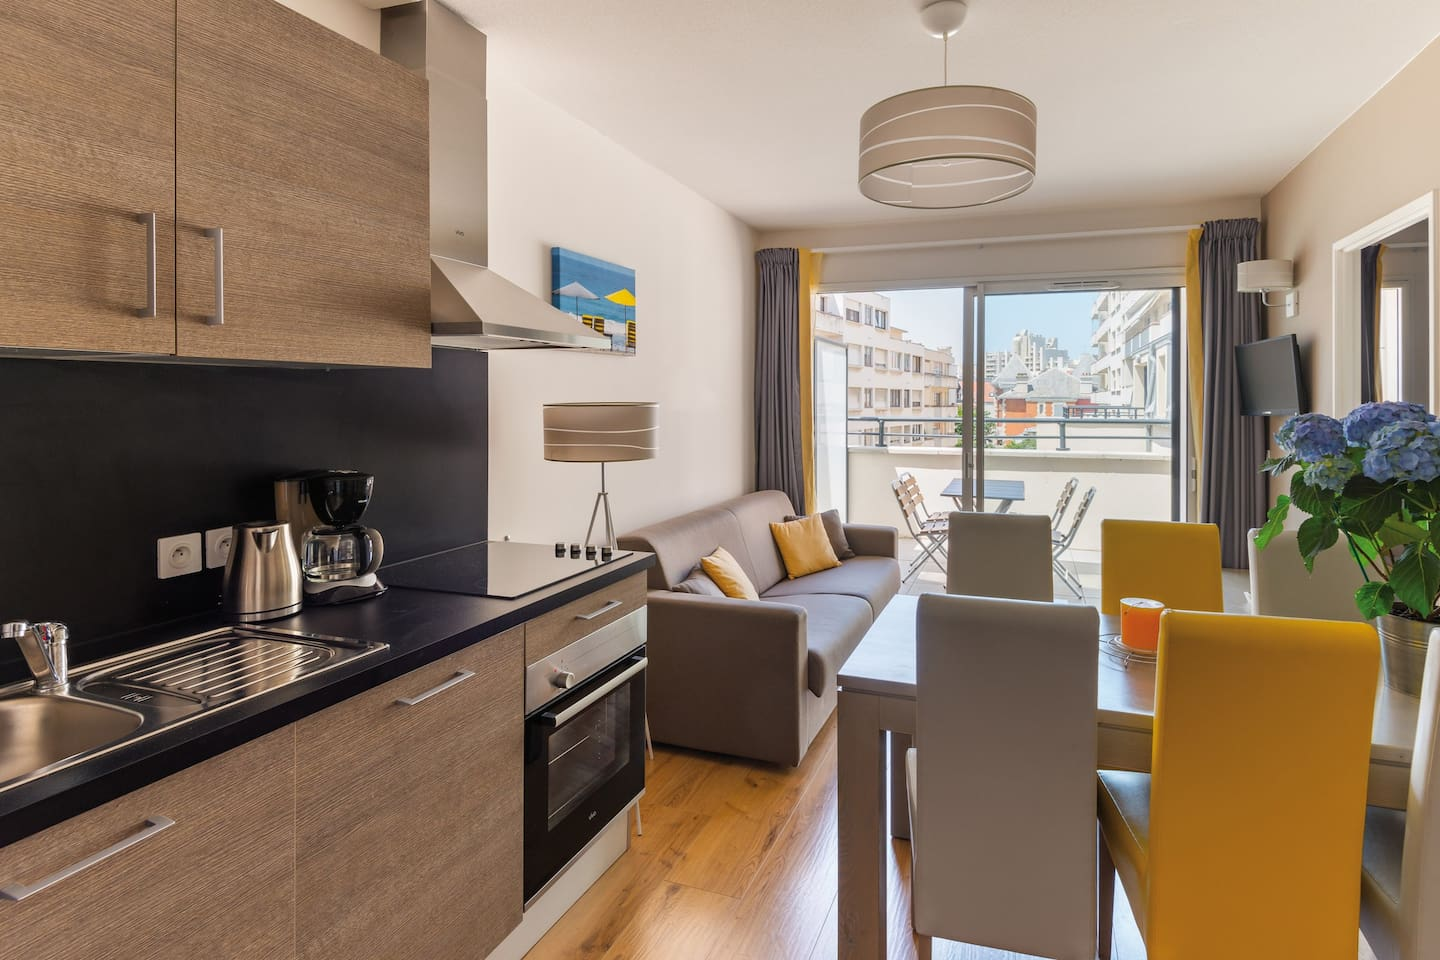 This apartment features the kitchenette and the living room which opens on to balcony/terrace.